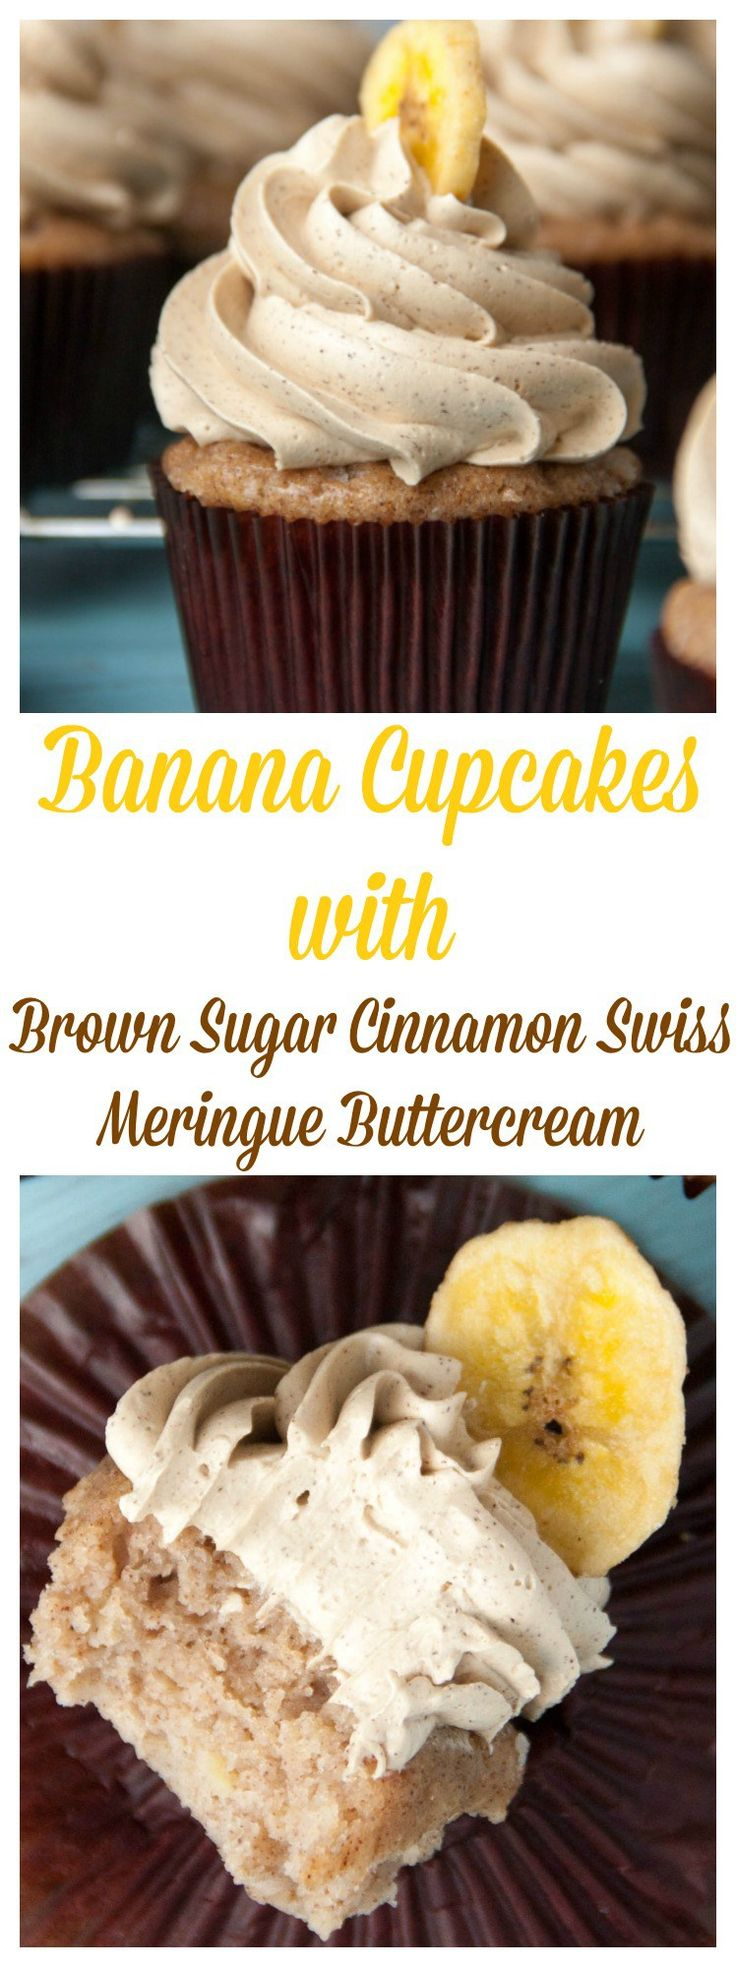 Banana Cupcakes With Brown Sugar Cinnamon Swiss Meringue Buttercream | Boston Girl Bakes